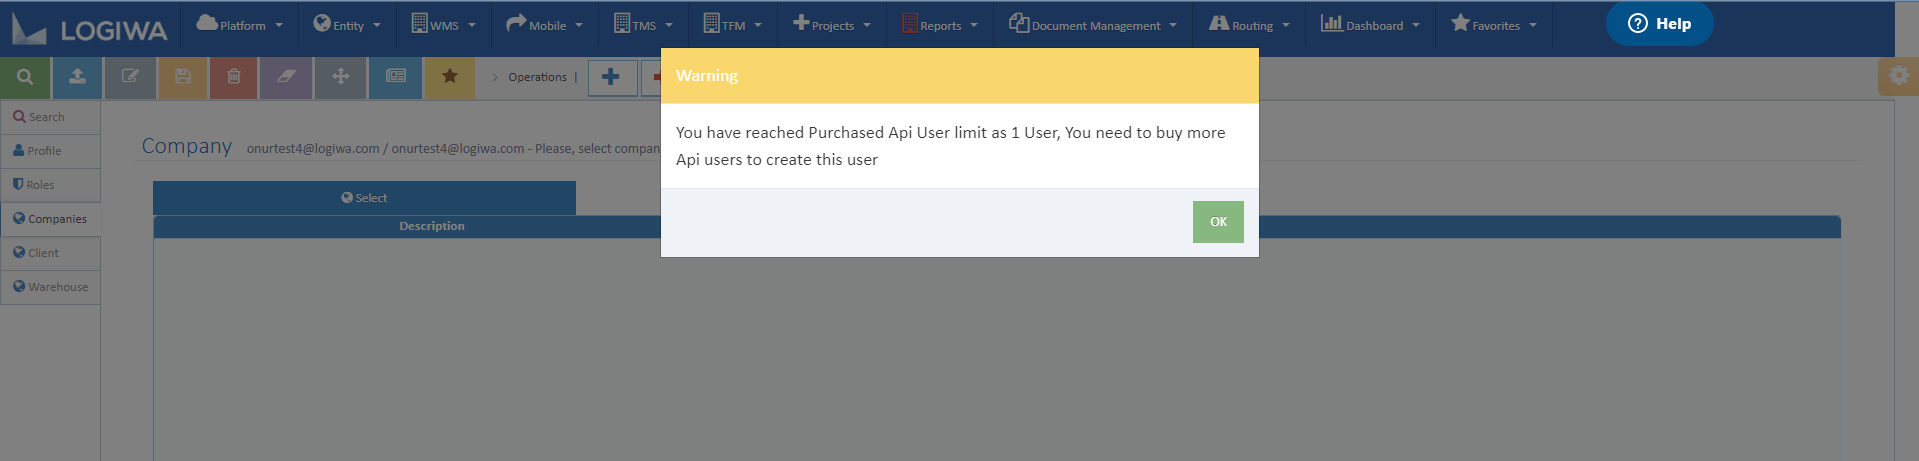 You_have_reached_Purchased_Api_User_limit_as_1_User__You_need_to_buy_more_Api_users_to_create_this_user.png